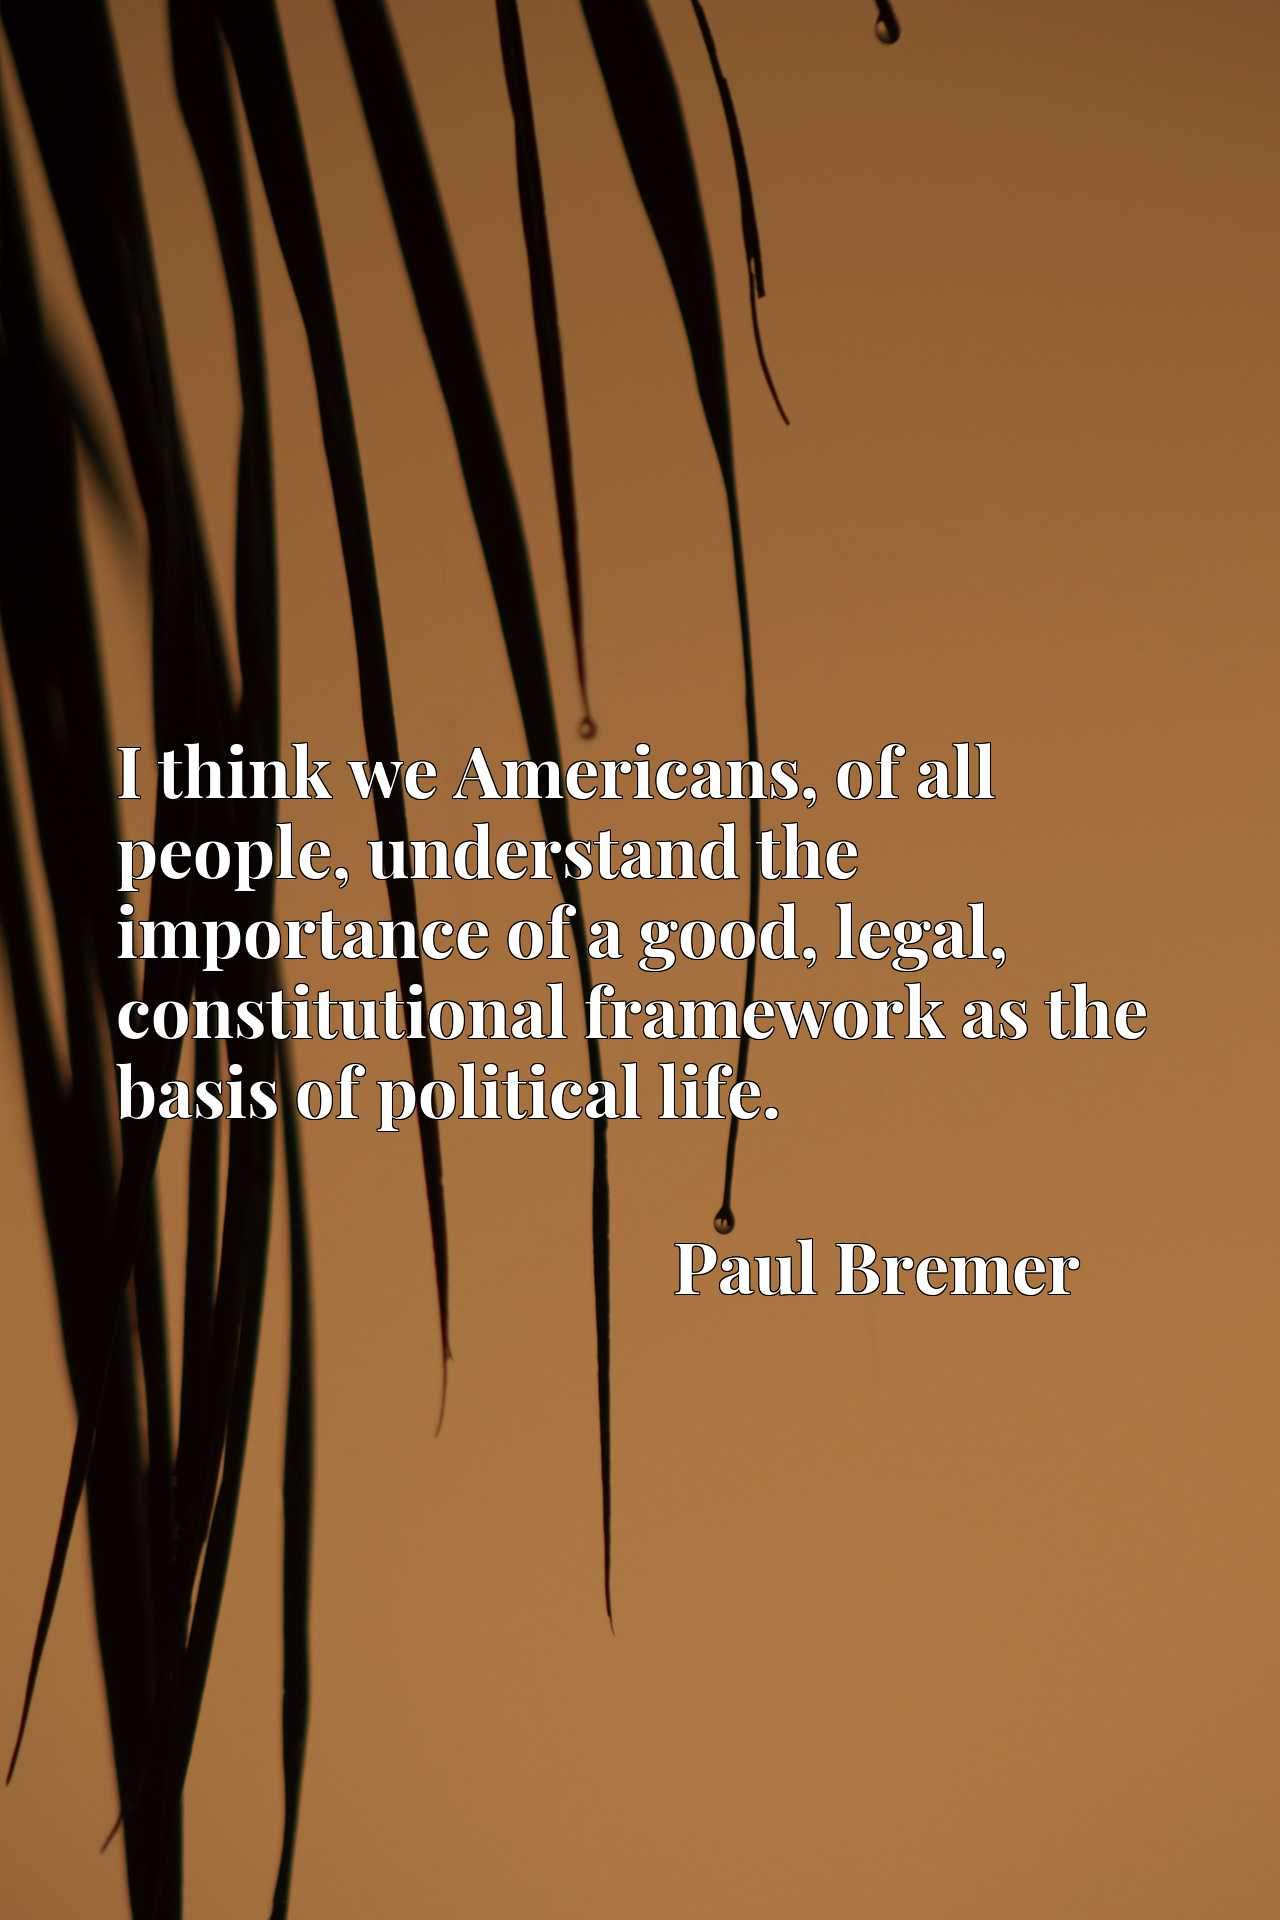 I think we Americans, of all people, understand the importance of a good, legal, constitutional framework as the basis of political life.